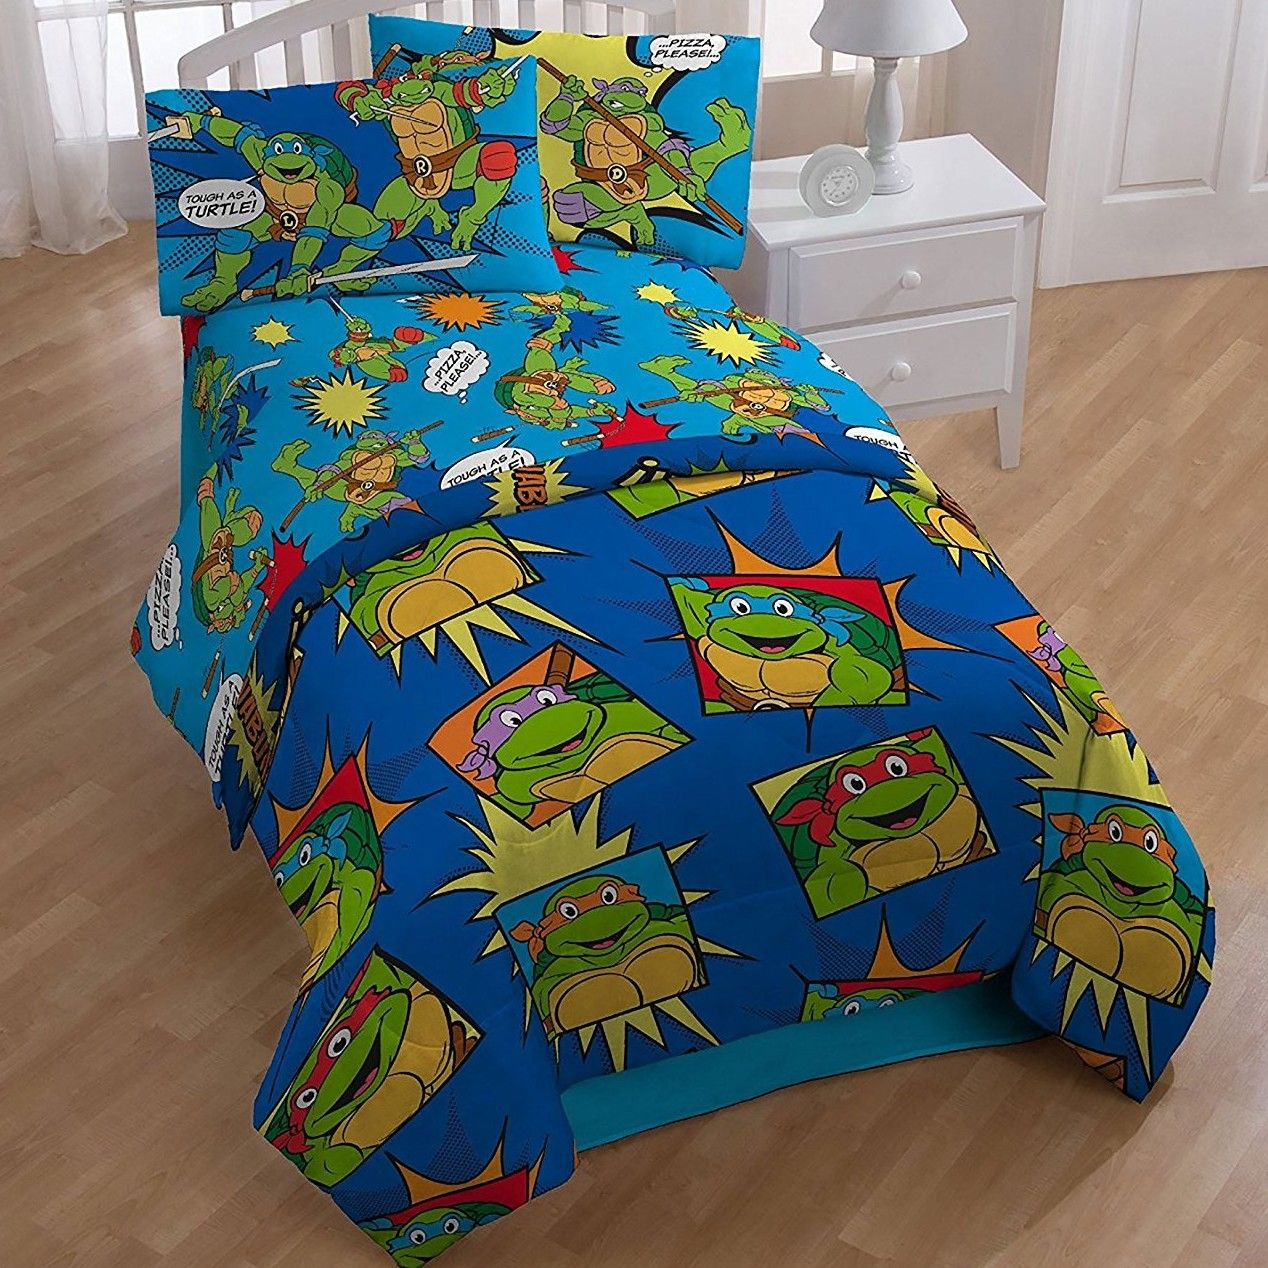 Teenage Mutant Ninja Turtle 4 Piece Toddler Bedding Set Twin Bed Sets Kids Bedding Sets Bedding Sets